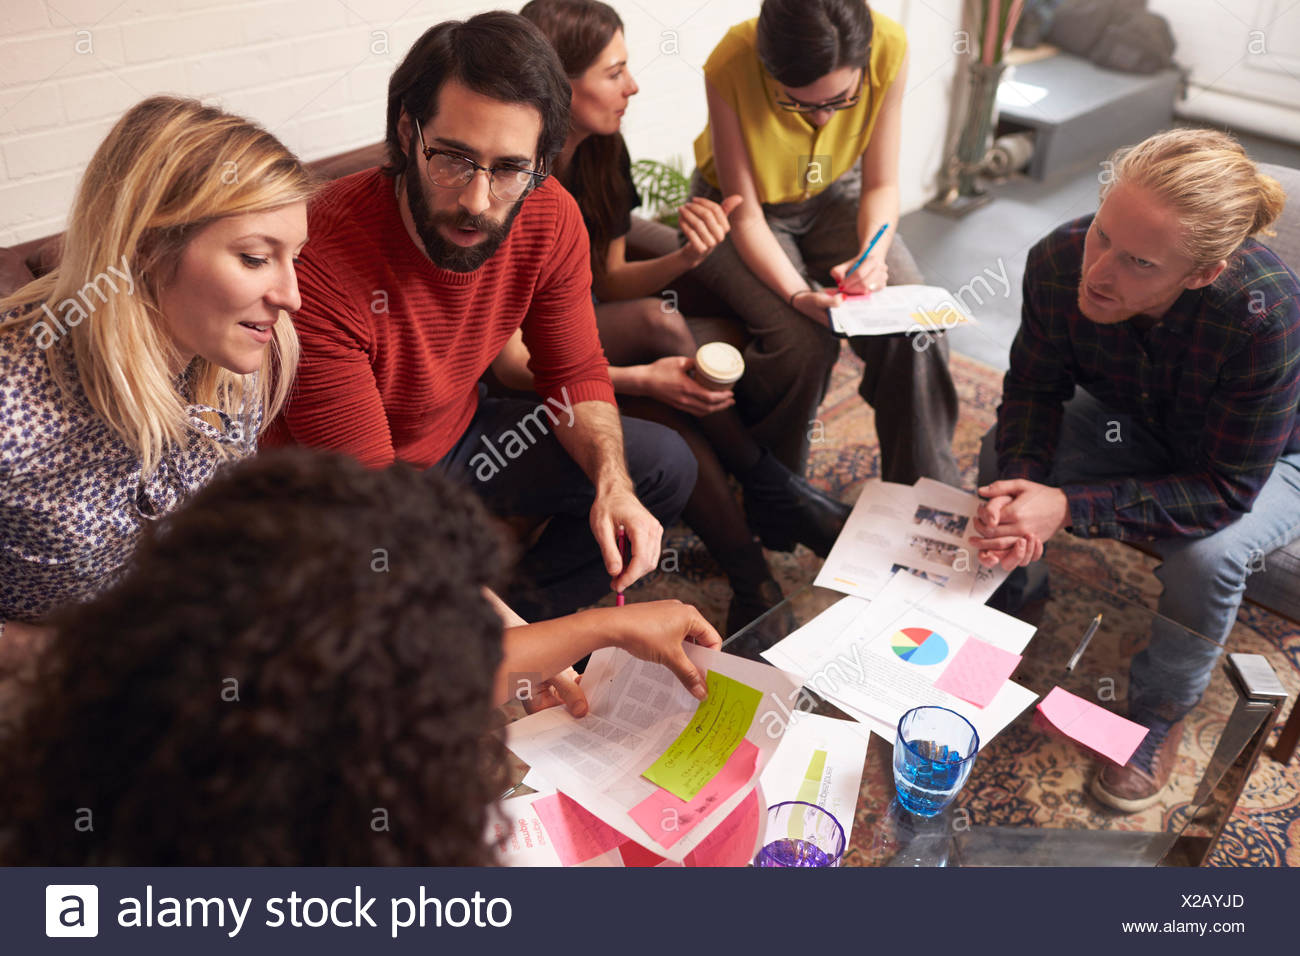 Designers Sitting On Sofa Having Creative Meeting In Office - Stock Image